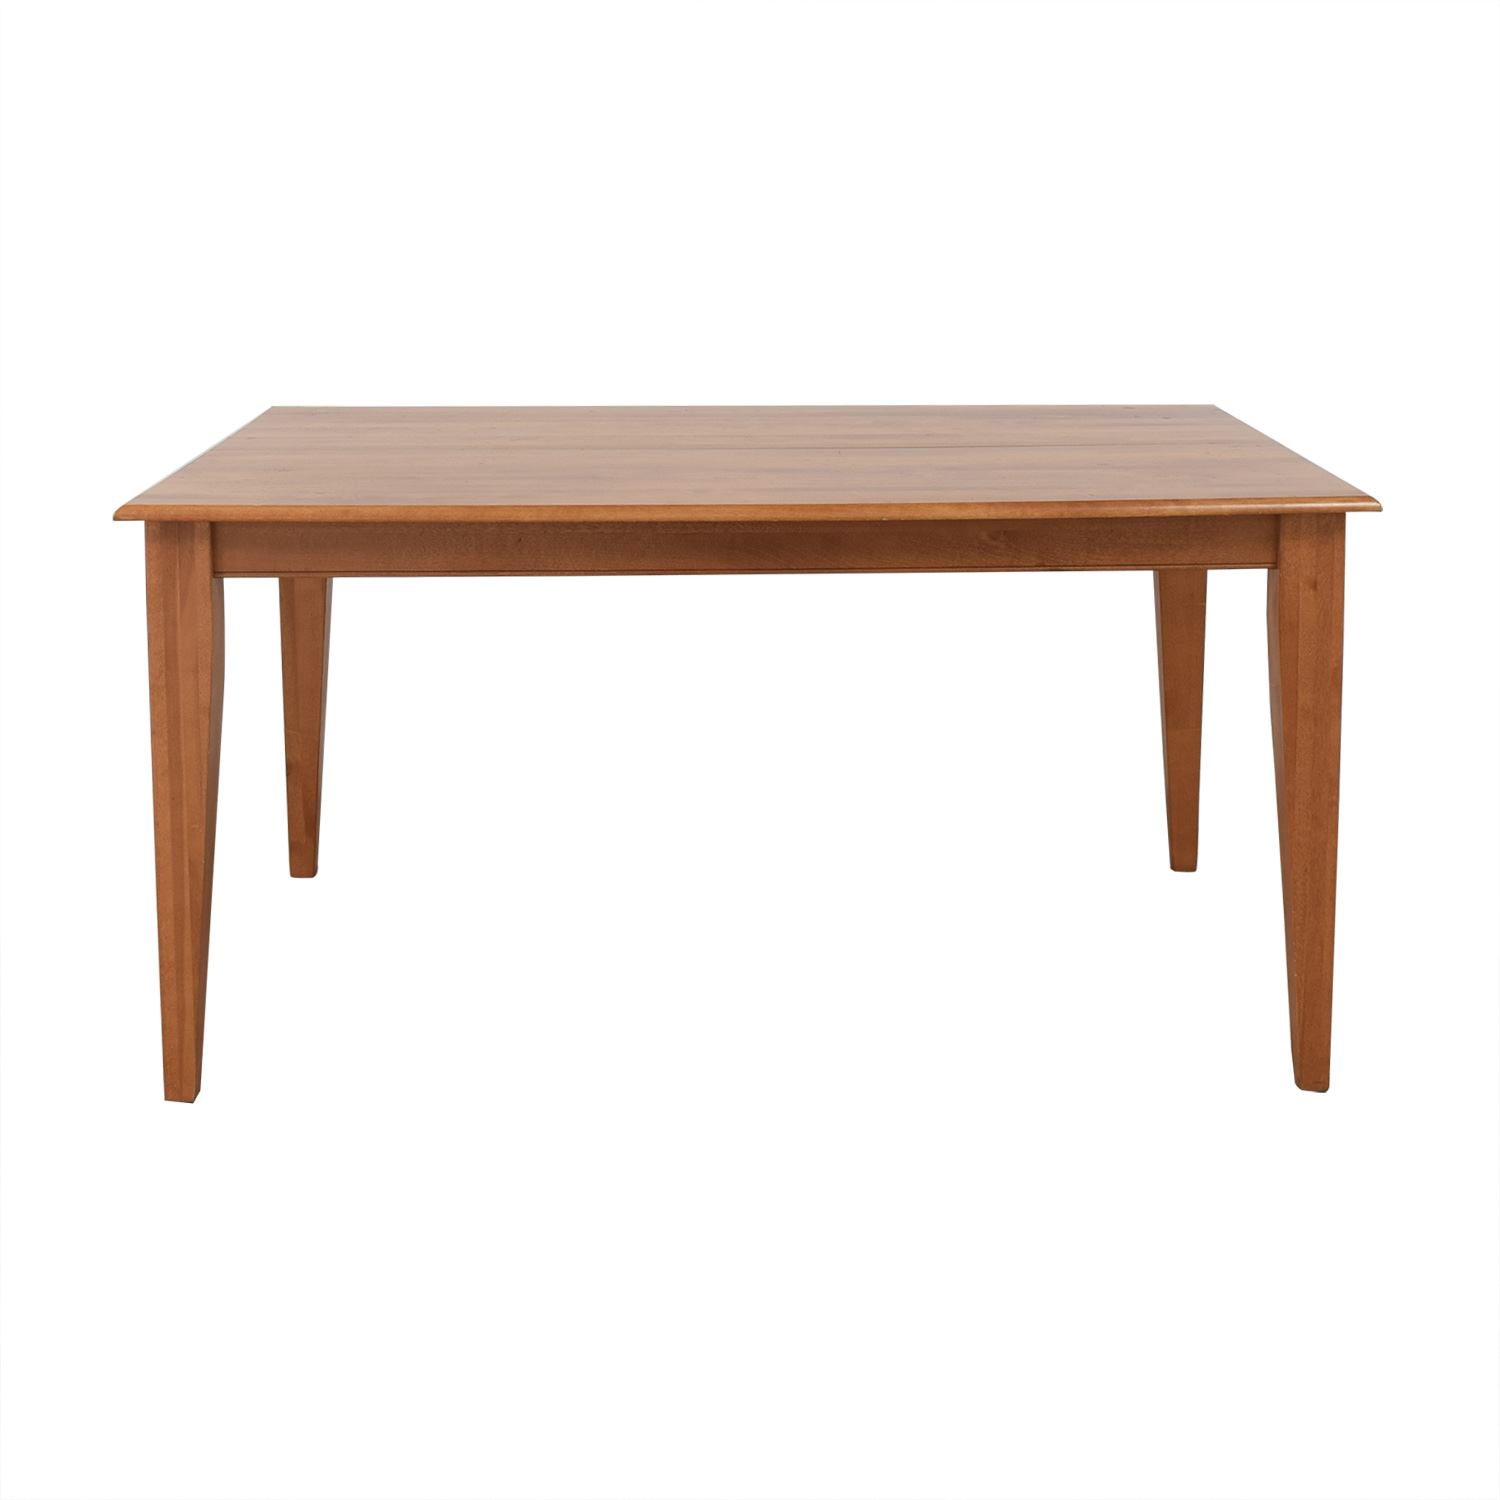 Canadian Extension Dining Table